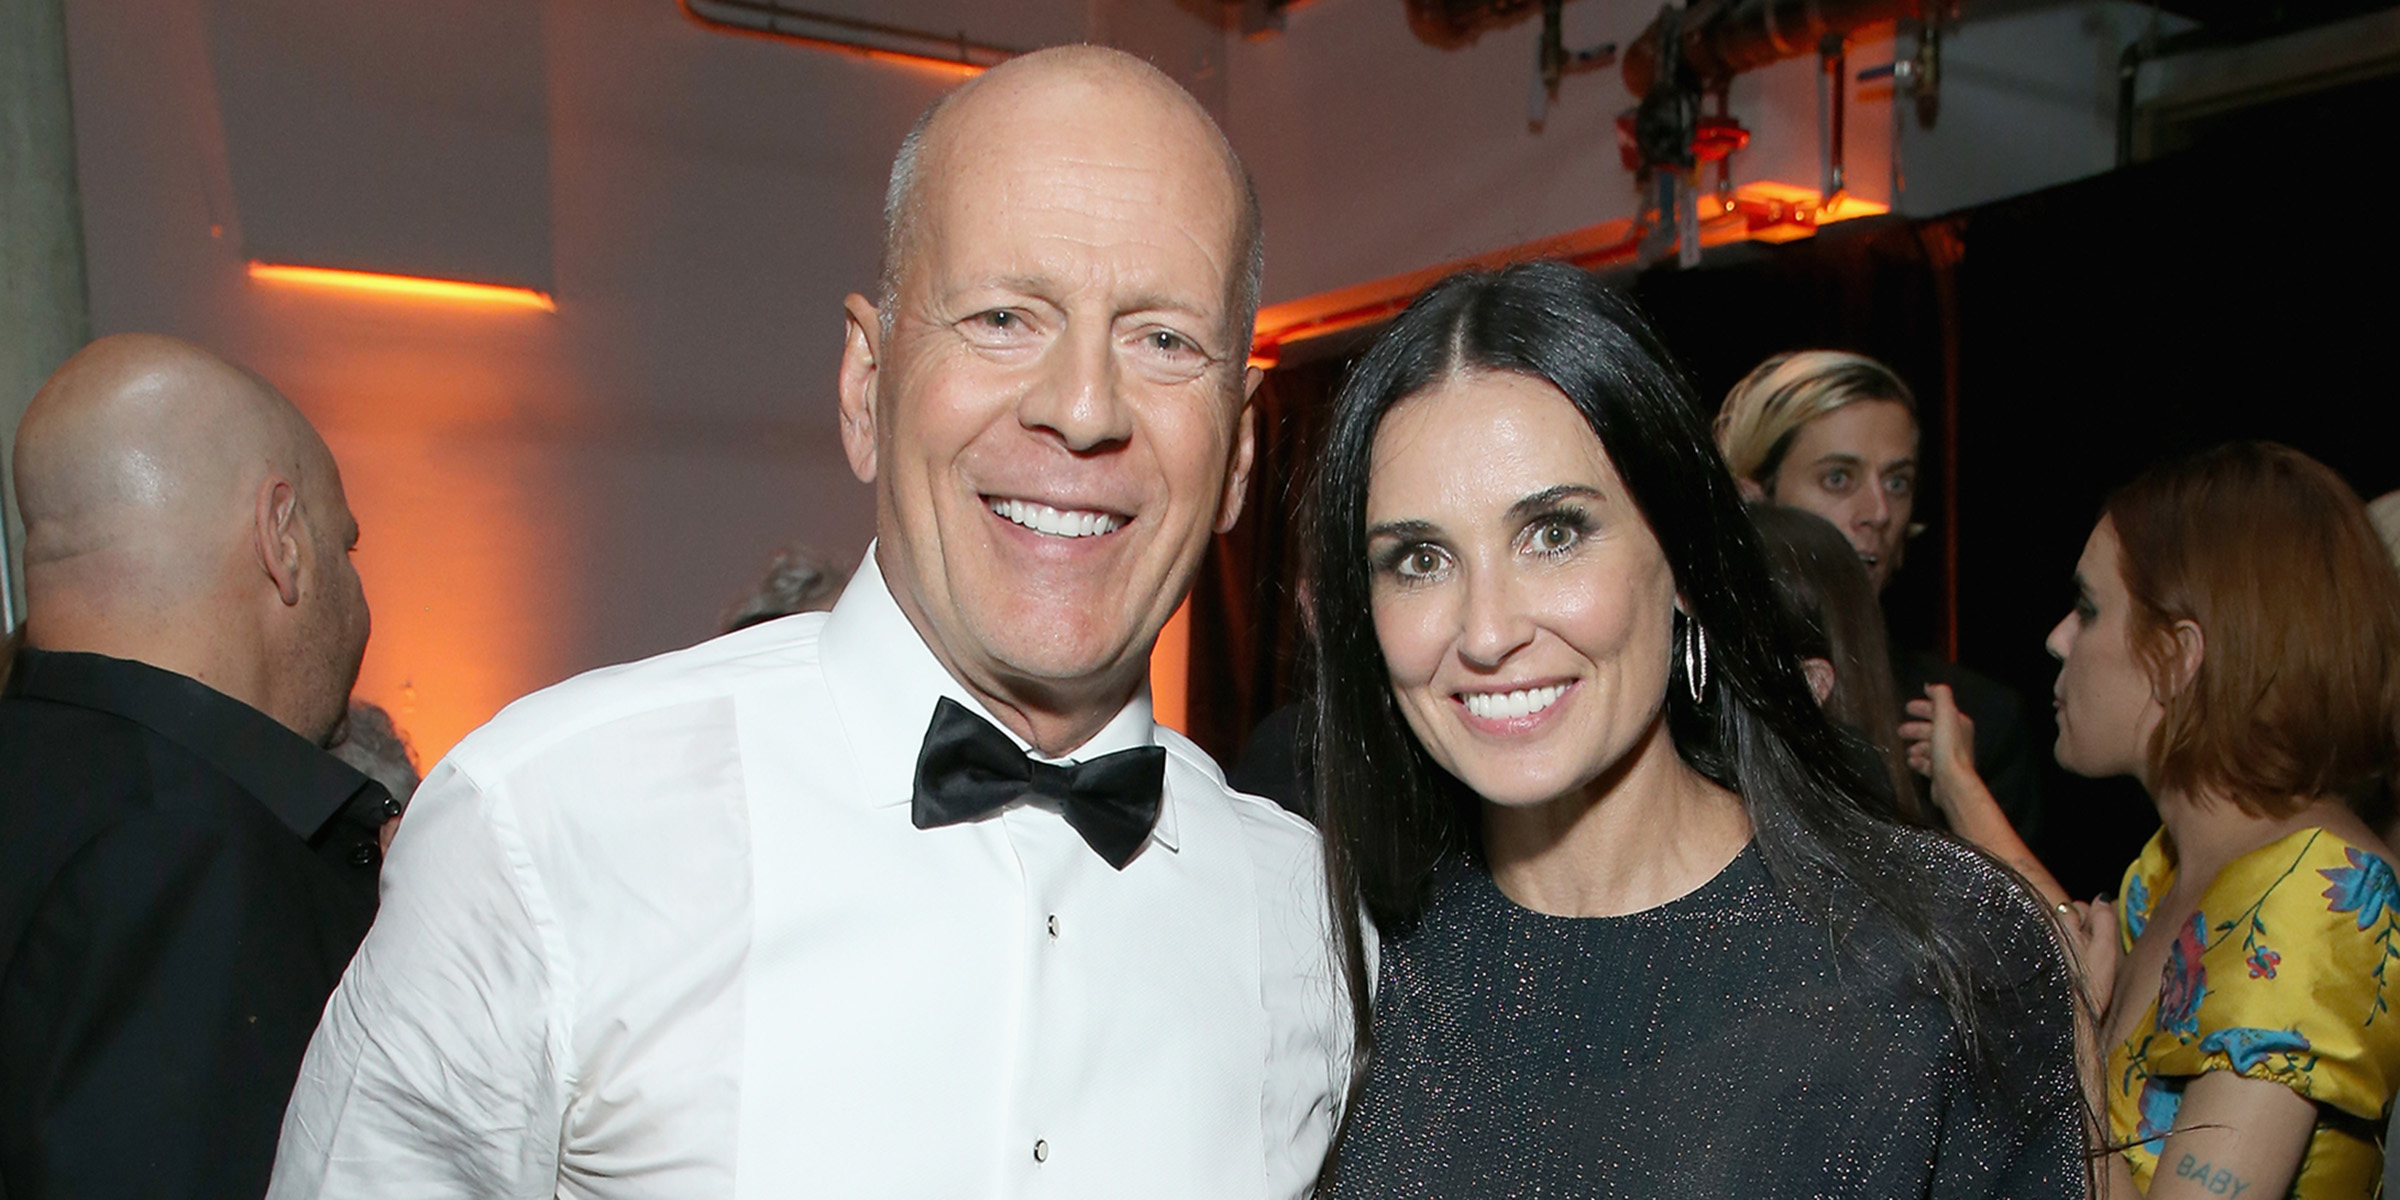 "bruce willis and demi moore ""width ="" 2400 "" height = ""1200"" srcset = ""https://www.top5.com/wp-content/uploads/2013/07/bruce-willis-and-demi-moore.jpg 2400w, https://www.top5.com / wp-content / uploads / 2013/07 / bruce willis--and-demi-moore-300x150. jpg 300w, https://www.top5.com/wp-content/uploads/2013/07/bruce-willis-and-demi-moore-768x384.jpg 768w, https://www.top5.com/wp- content / uploads / 2013/07 / bruce-willis-and-demi-moore-1024x512.jpg 1024w ""Sizes ="" (maximum width: 2400px) 100vw, 2400px"